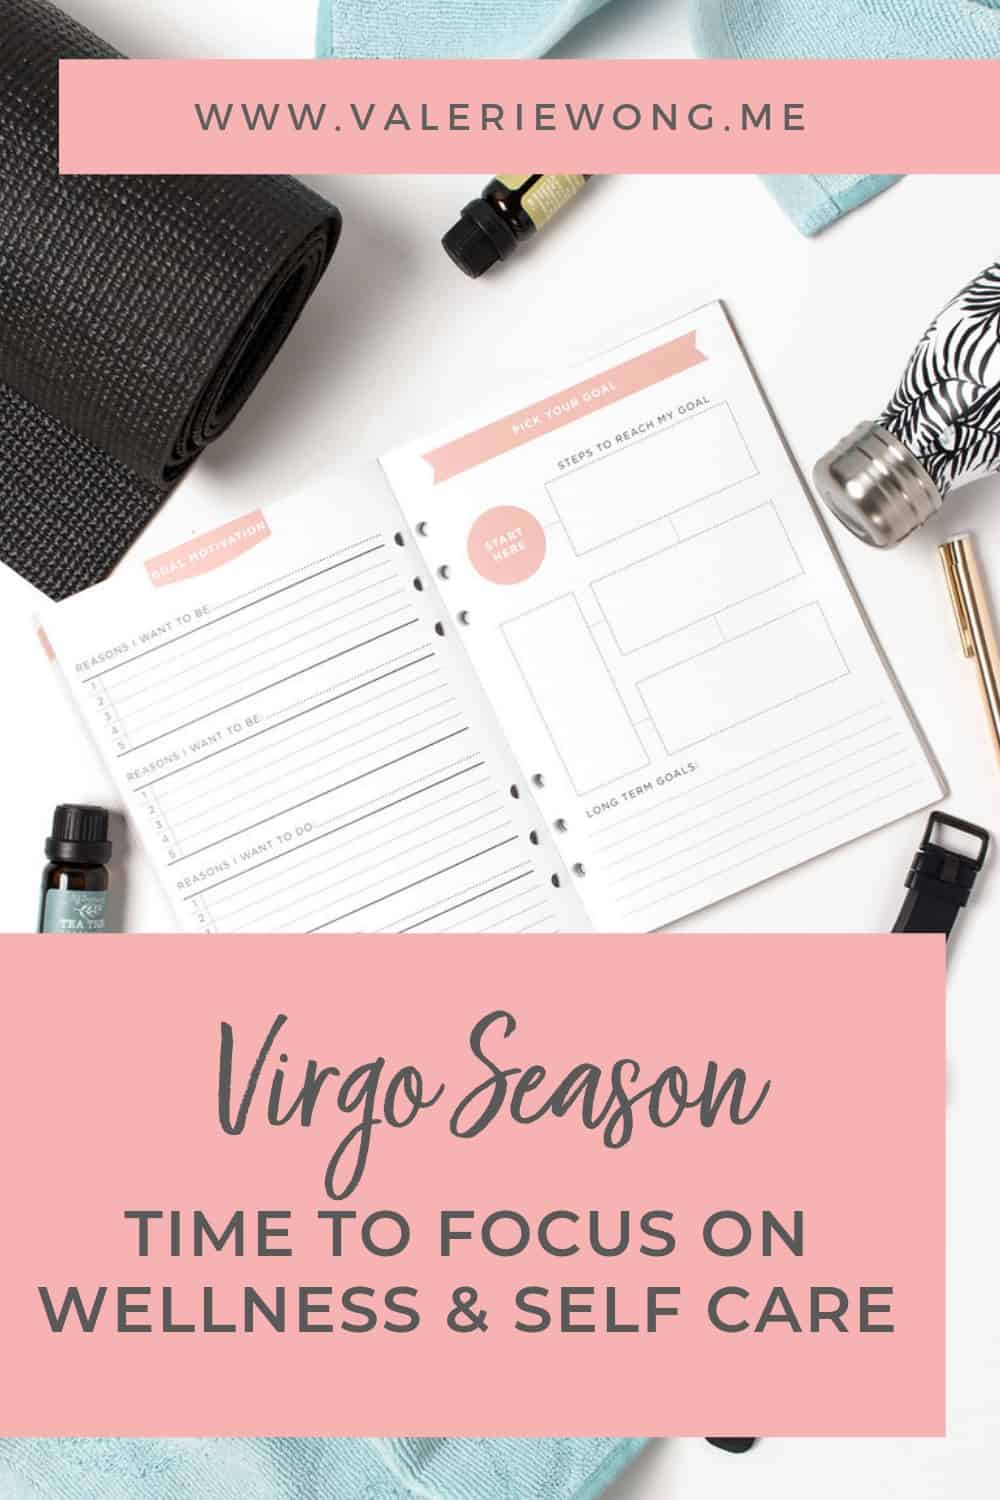 Learn how the combined energies of Virgo Season and Summer can help you start healthy habits and revamp your wellness routine.